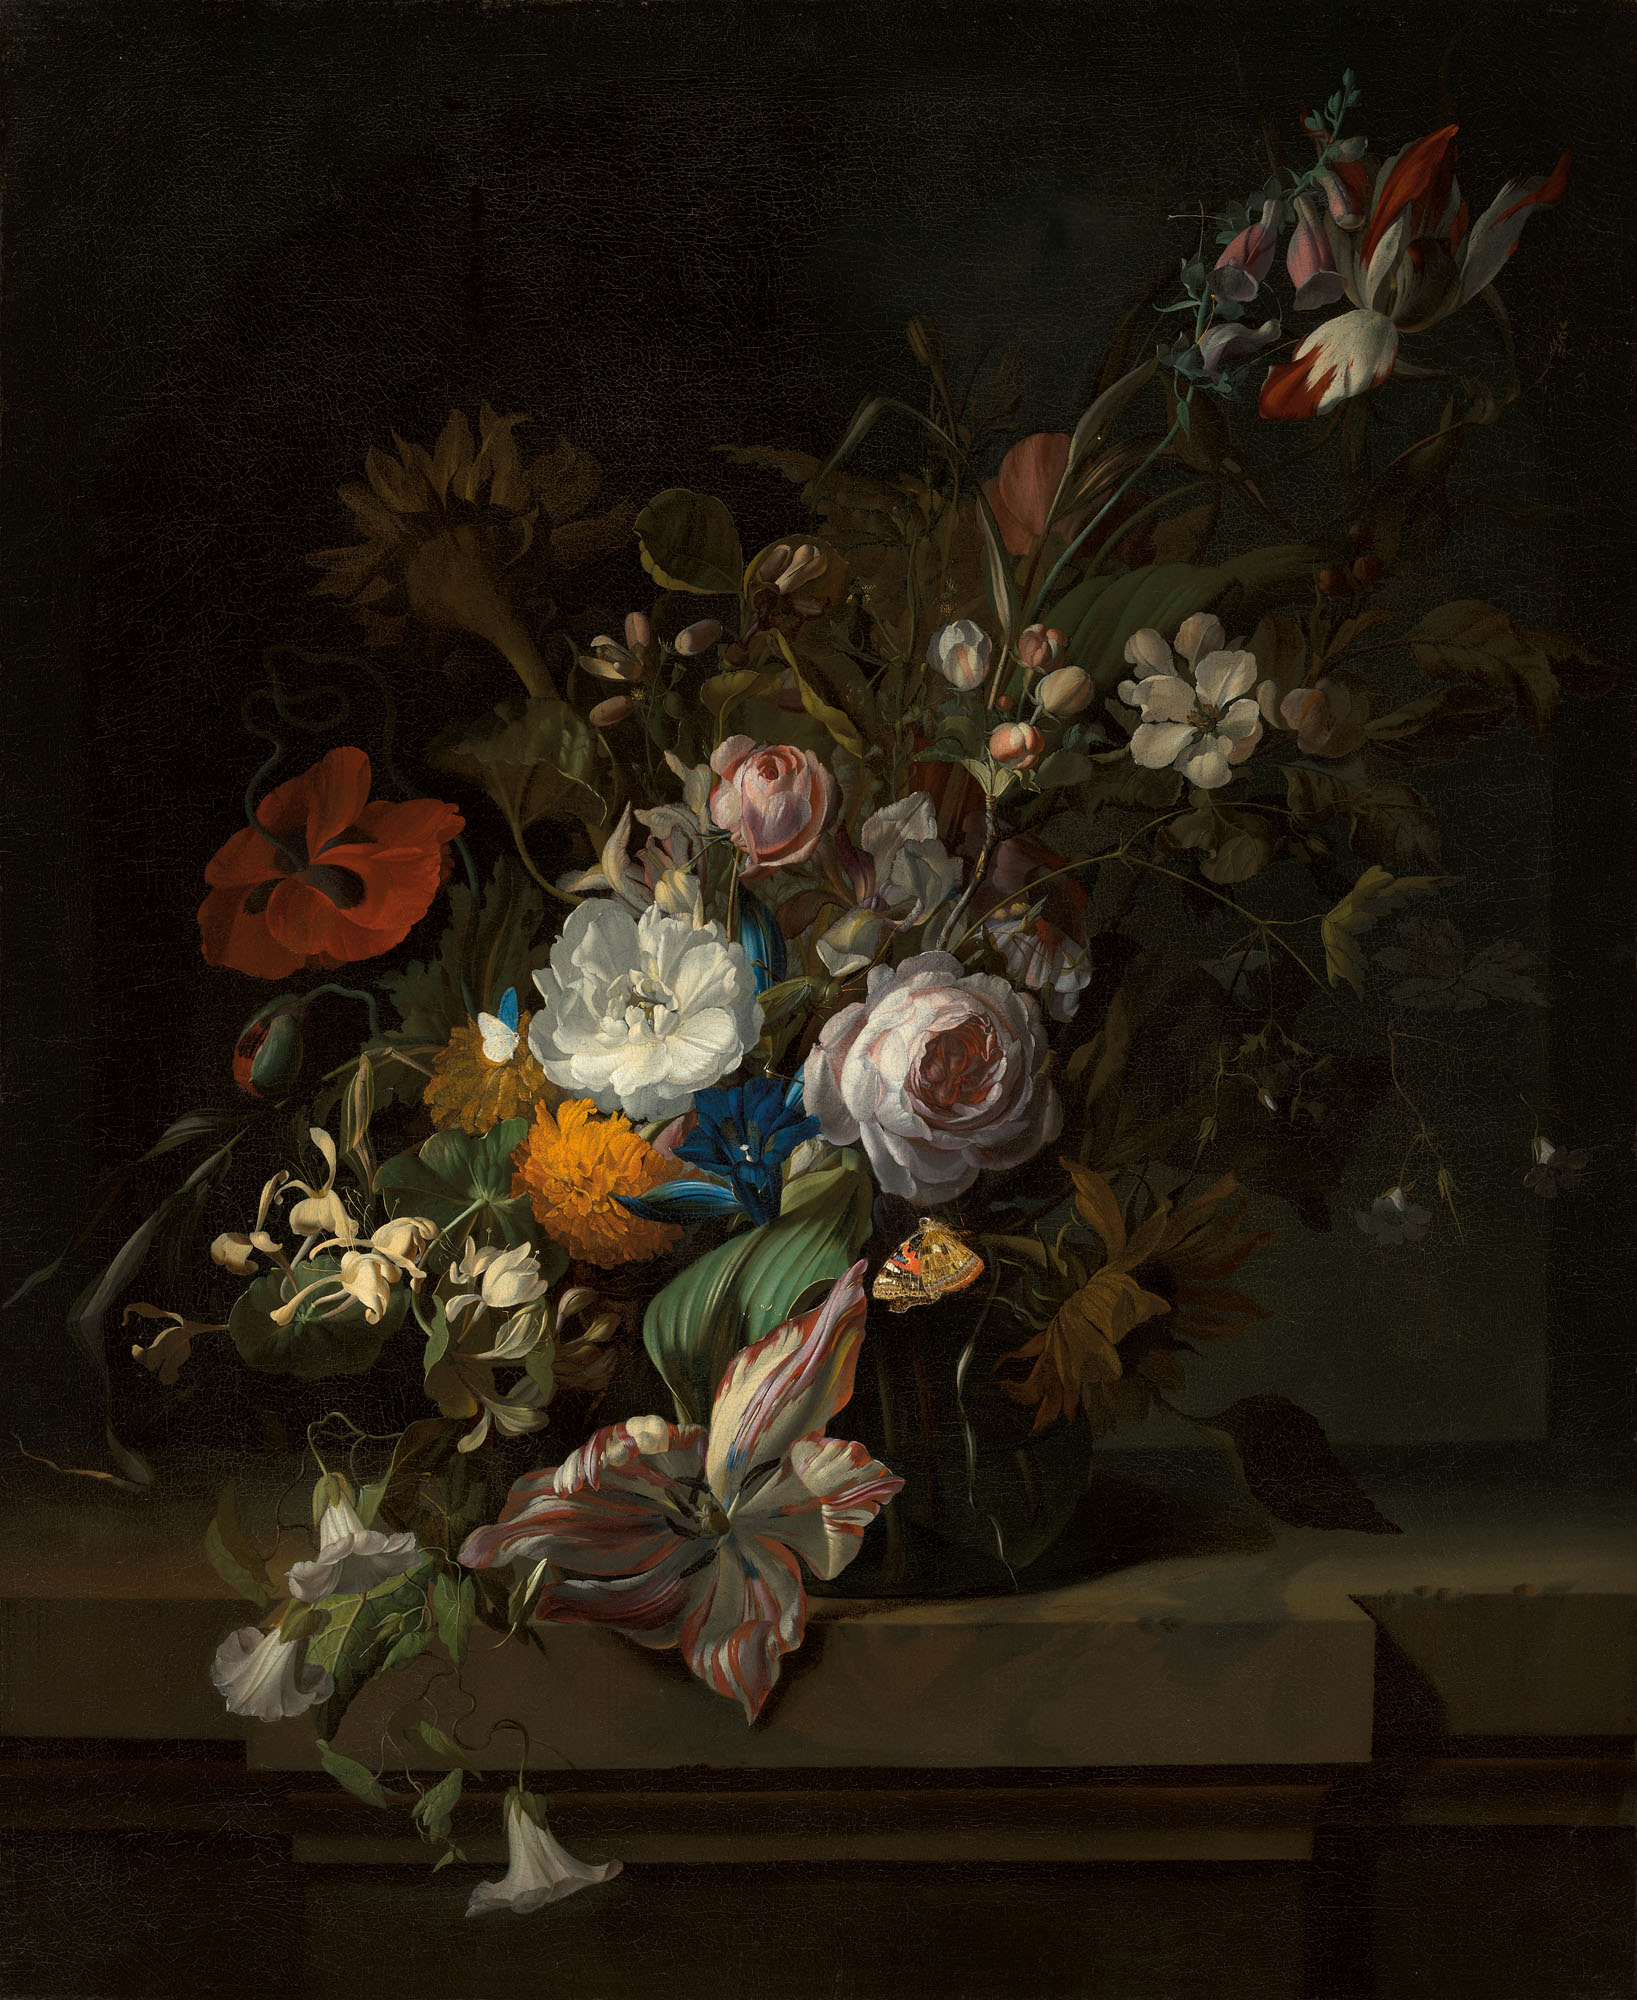 Rachel Ruysch (1664-1750), Tulips, rose, honeysuckle, apple blossom, poppies and other flowers in a glass vase, with a butterfly, on a marble ledge, circa early 1690s. Oil on canvas. 30 x 24¾ in (76.3 x 62.8 cm). Sold for £412,500 on 15 December 2020 at Christie's in London